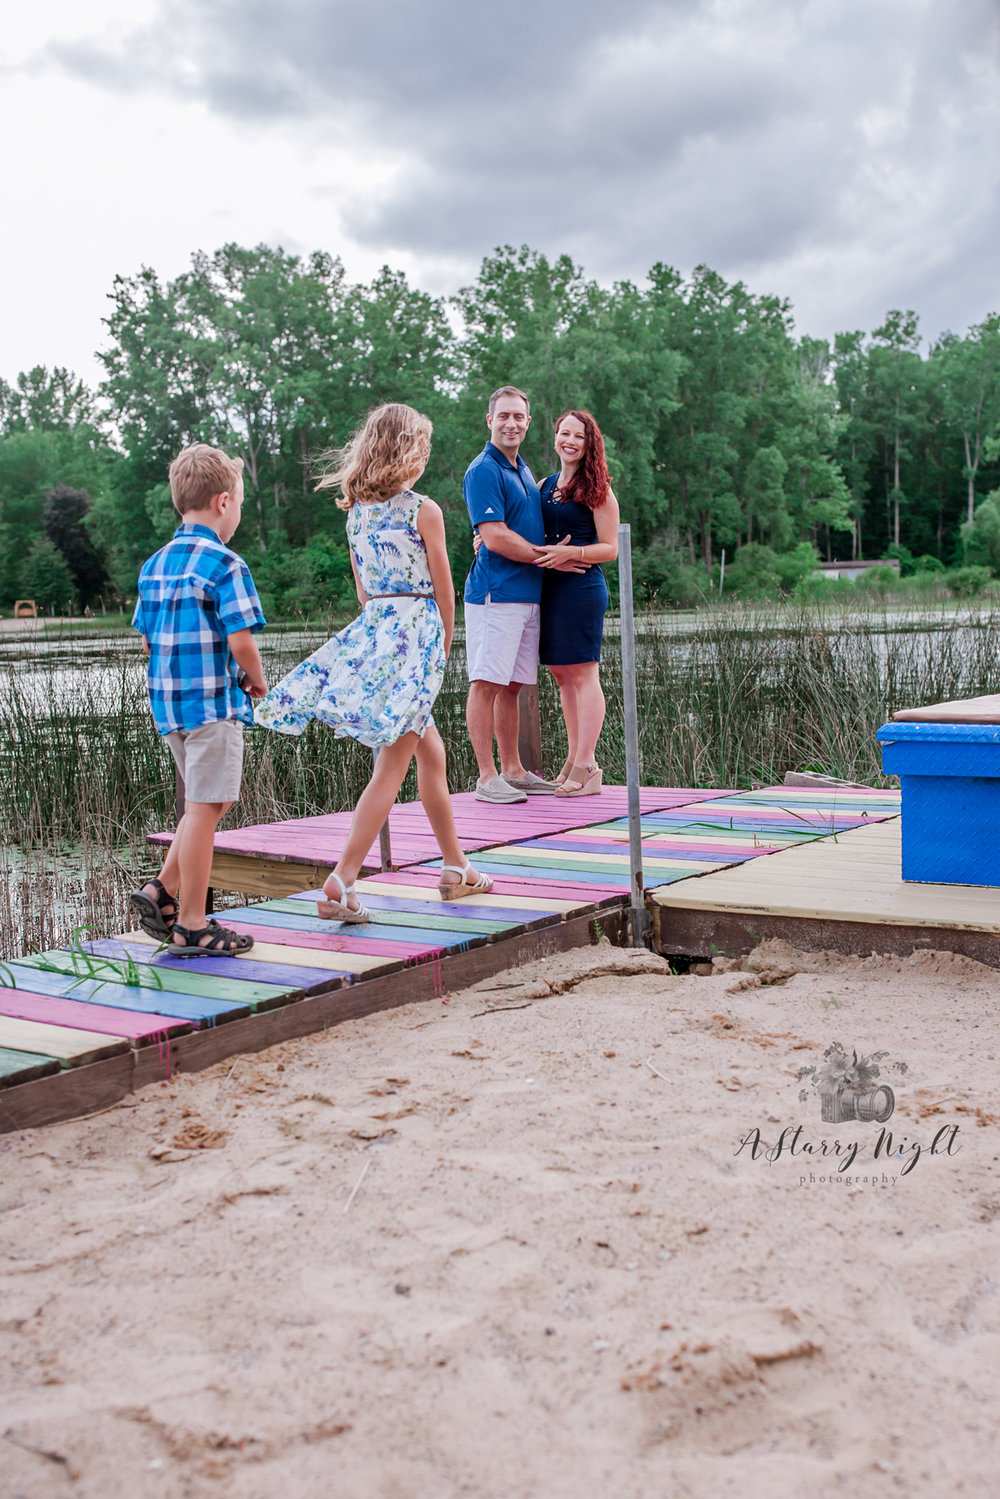 Lake-thirteen-central-michigan-family-photography.jpg